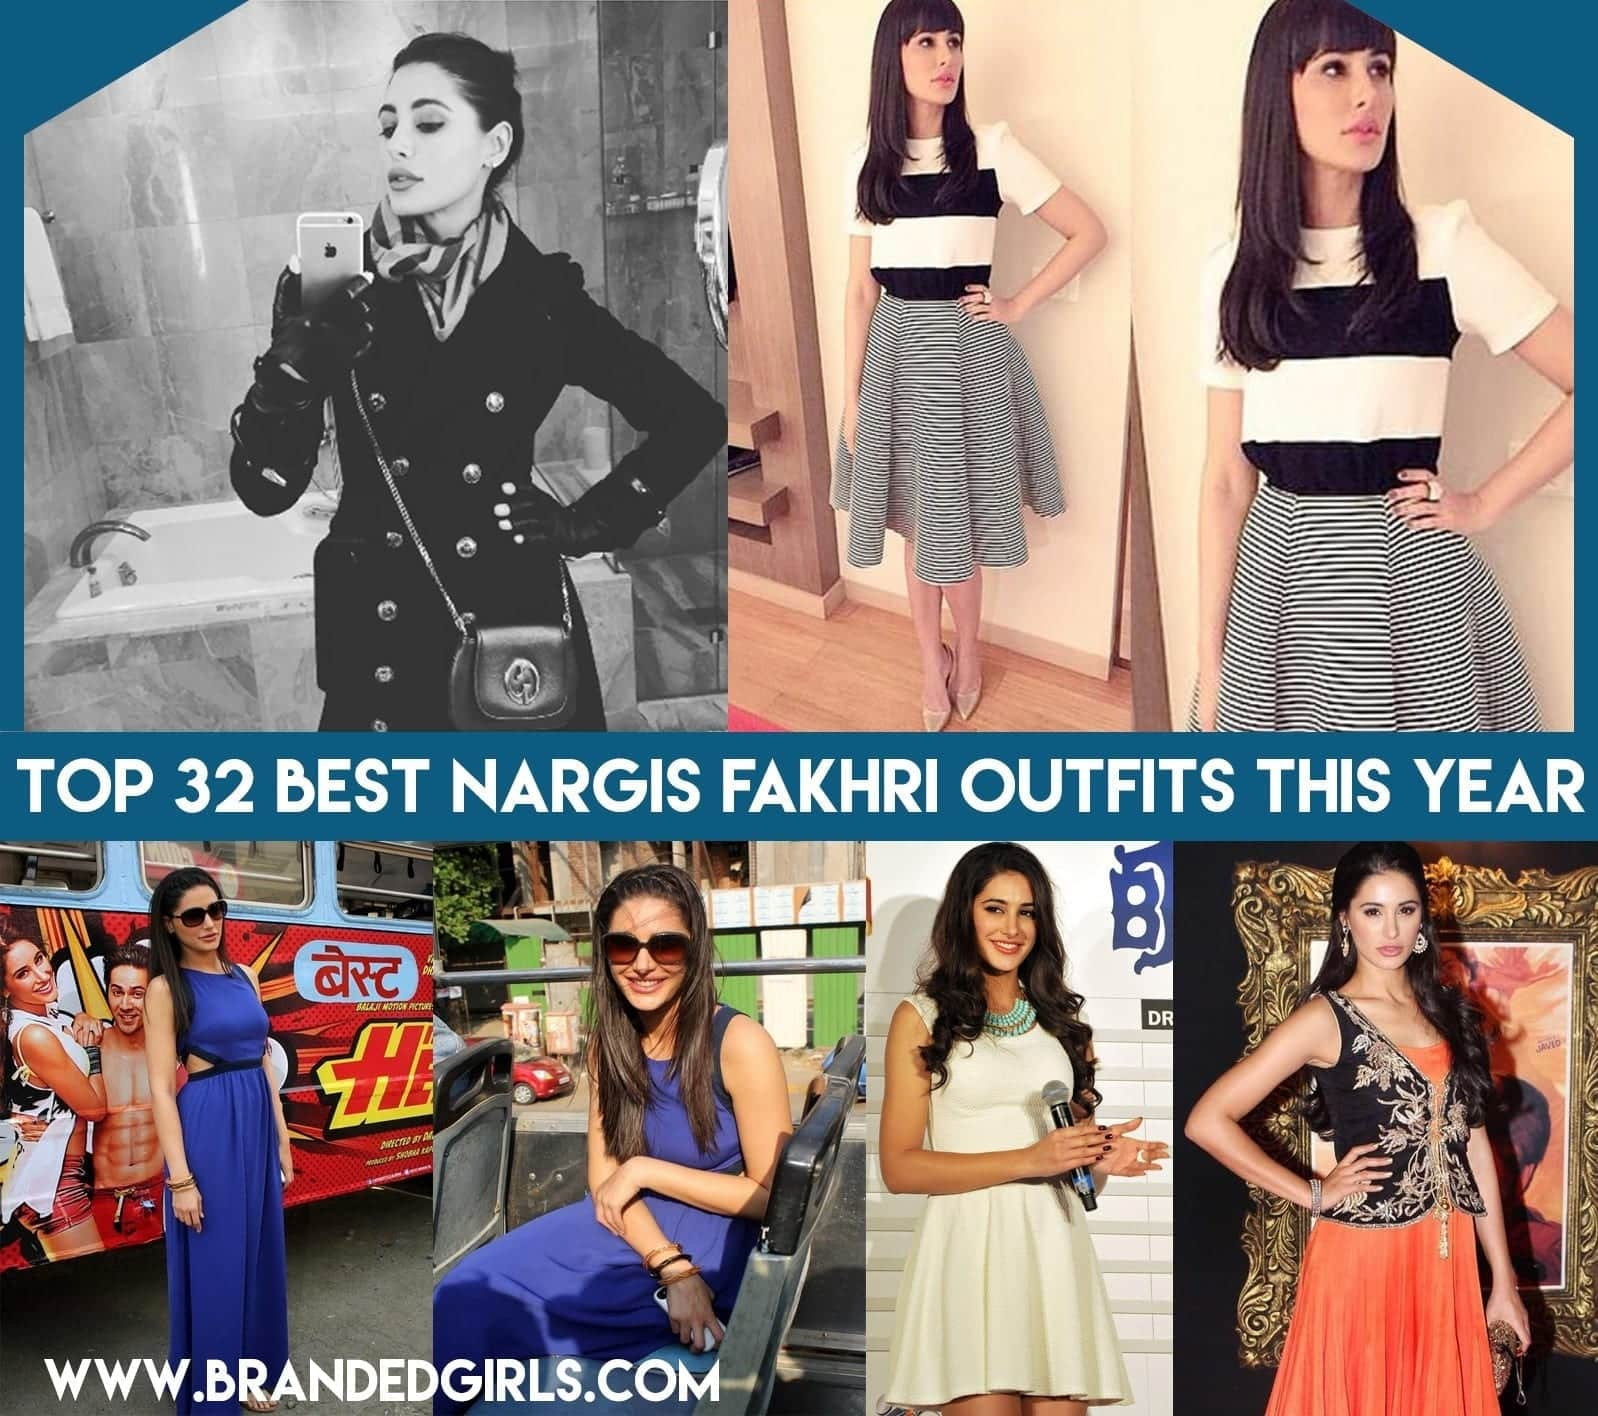 Top-32-Best-Nargis-Fakhri-Outfits Nargis Fakhri Outfits-32 Best Looks of Nargis Fakhri to Copy